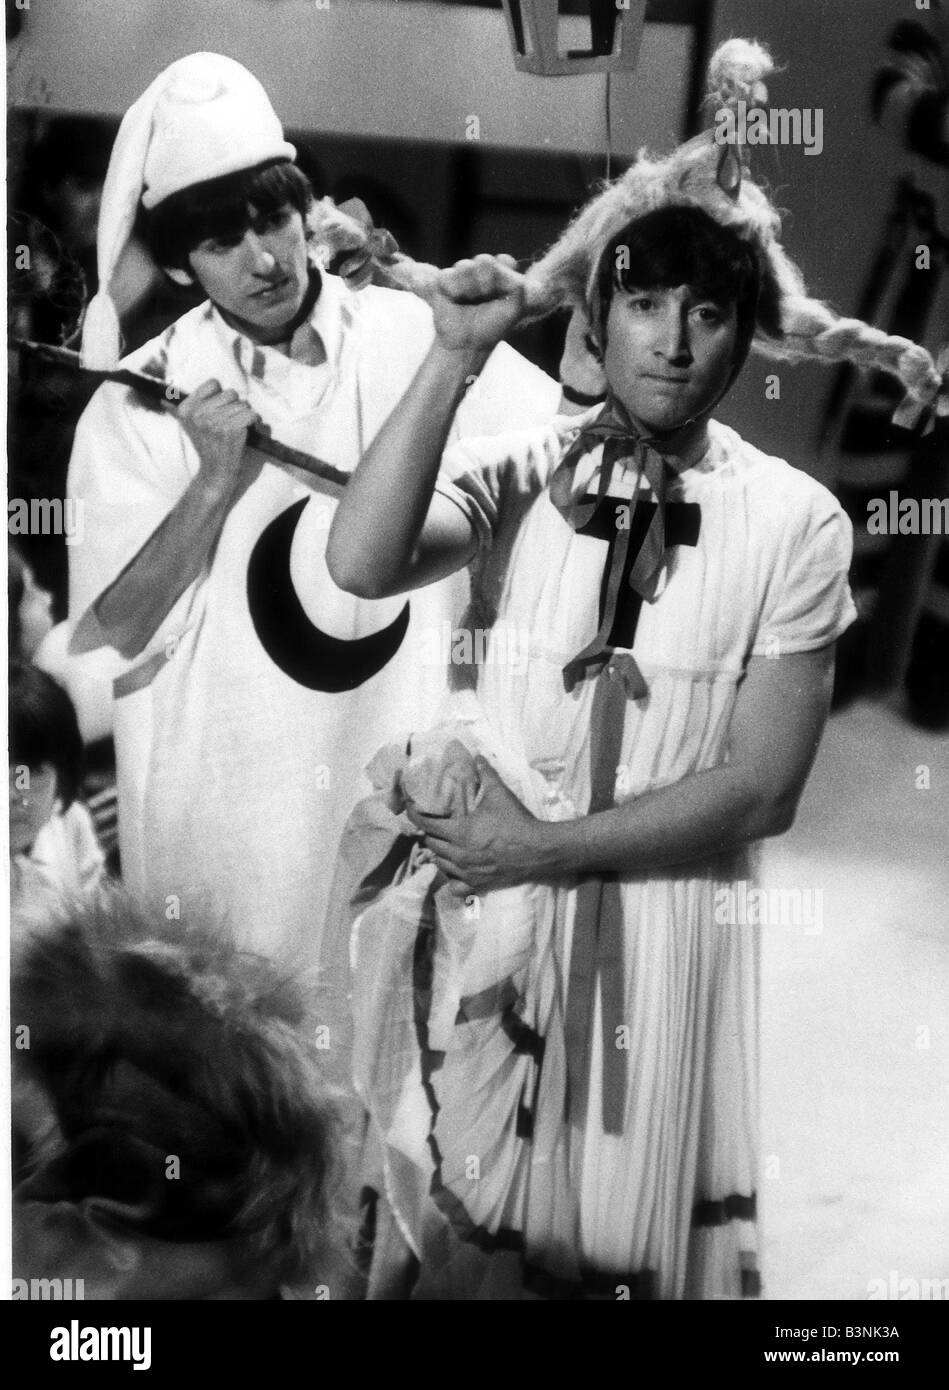 John Lennon and George Harrison of the Beatles rehearsing a scene from a midsummer night dream with additional dialogue - Stock Image